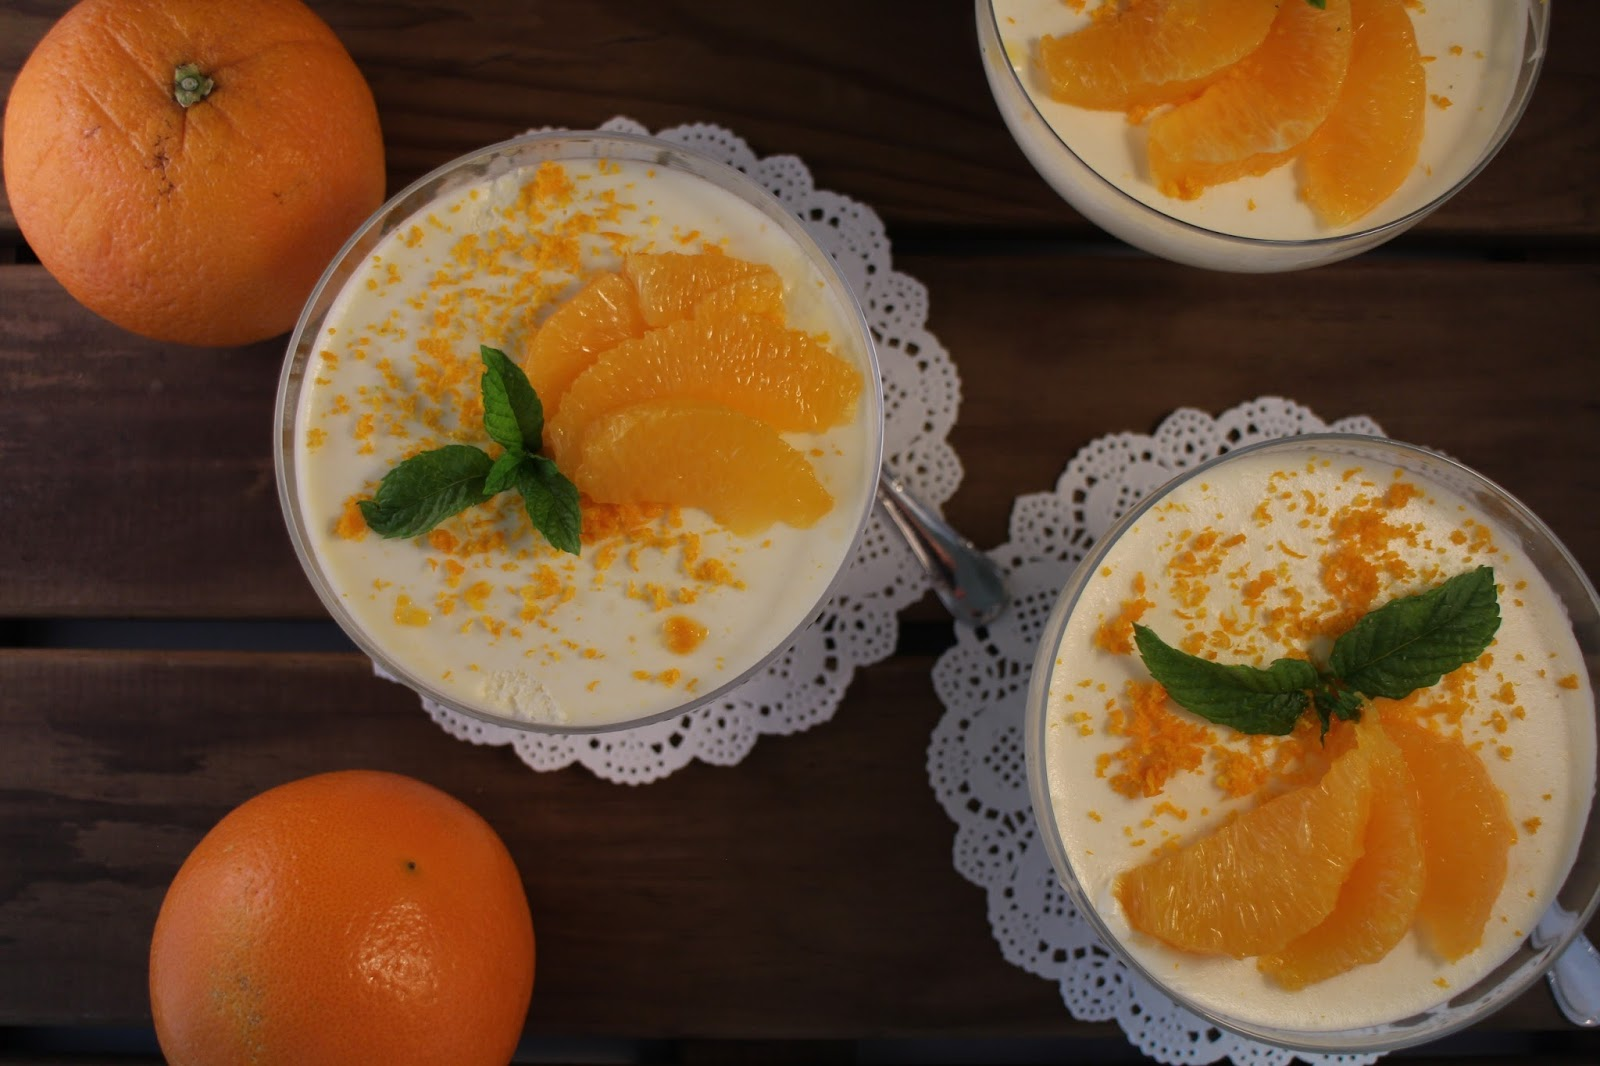 bavarois-de-naranja, orange-bavarian